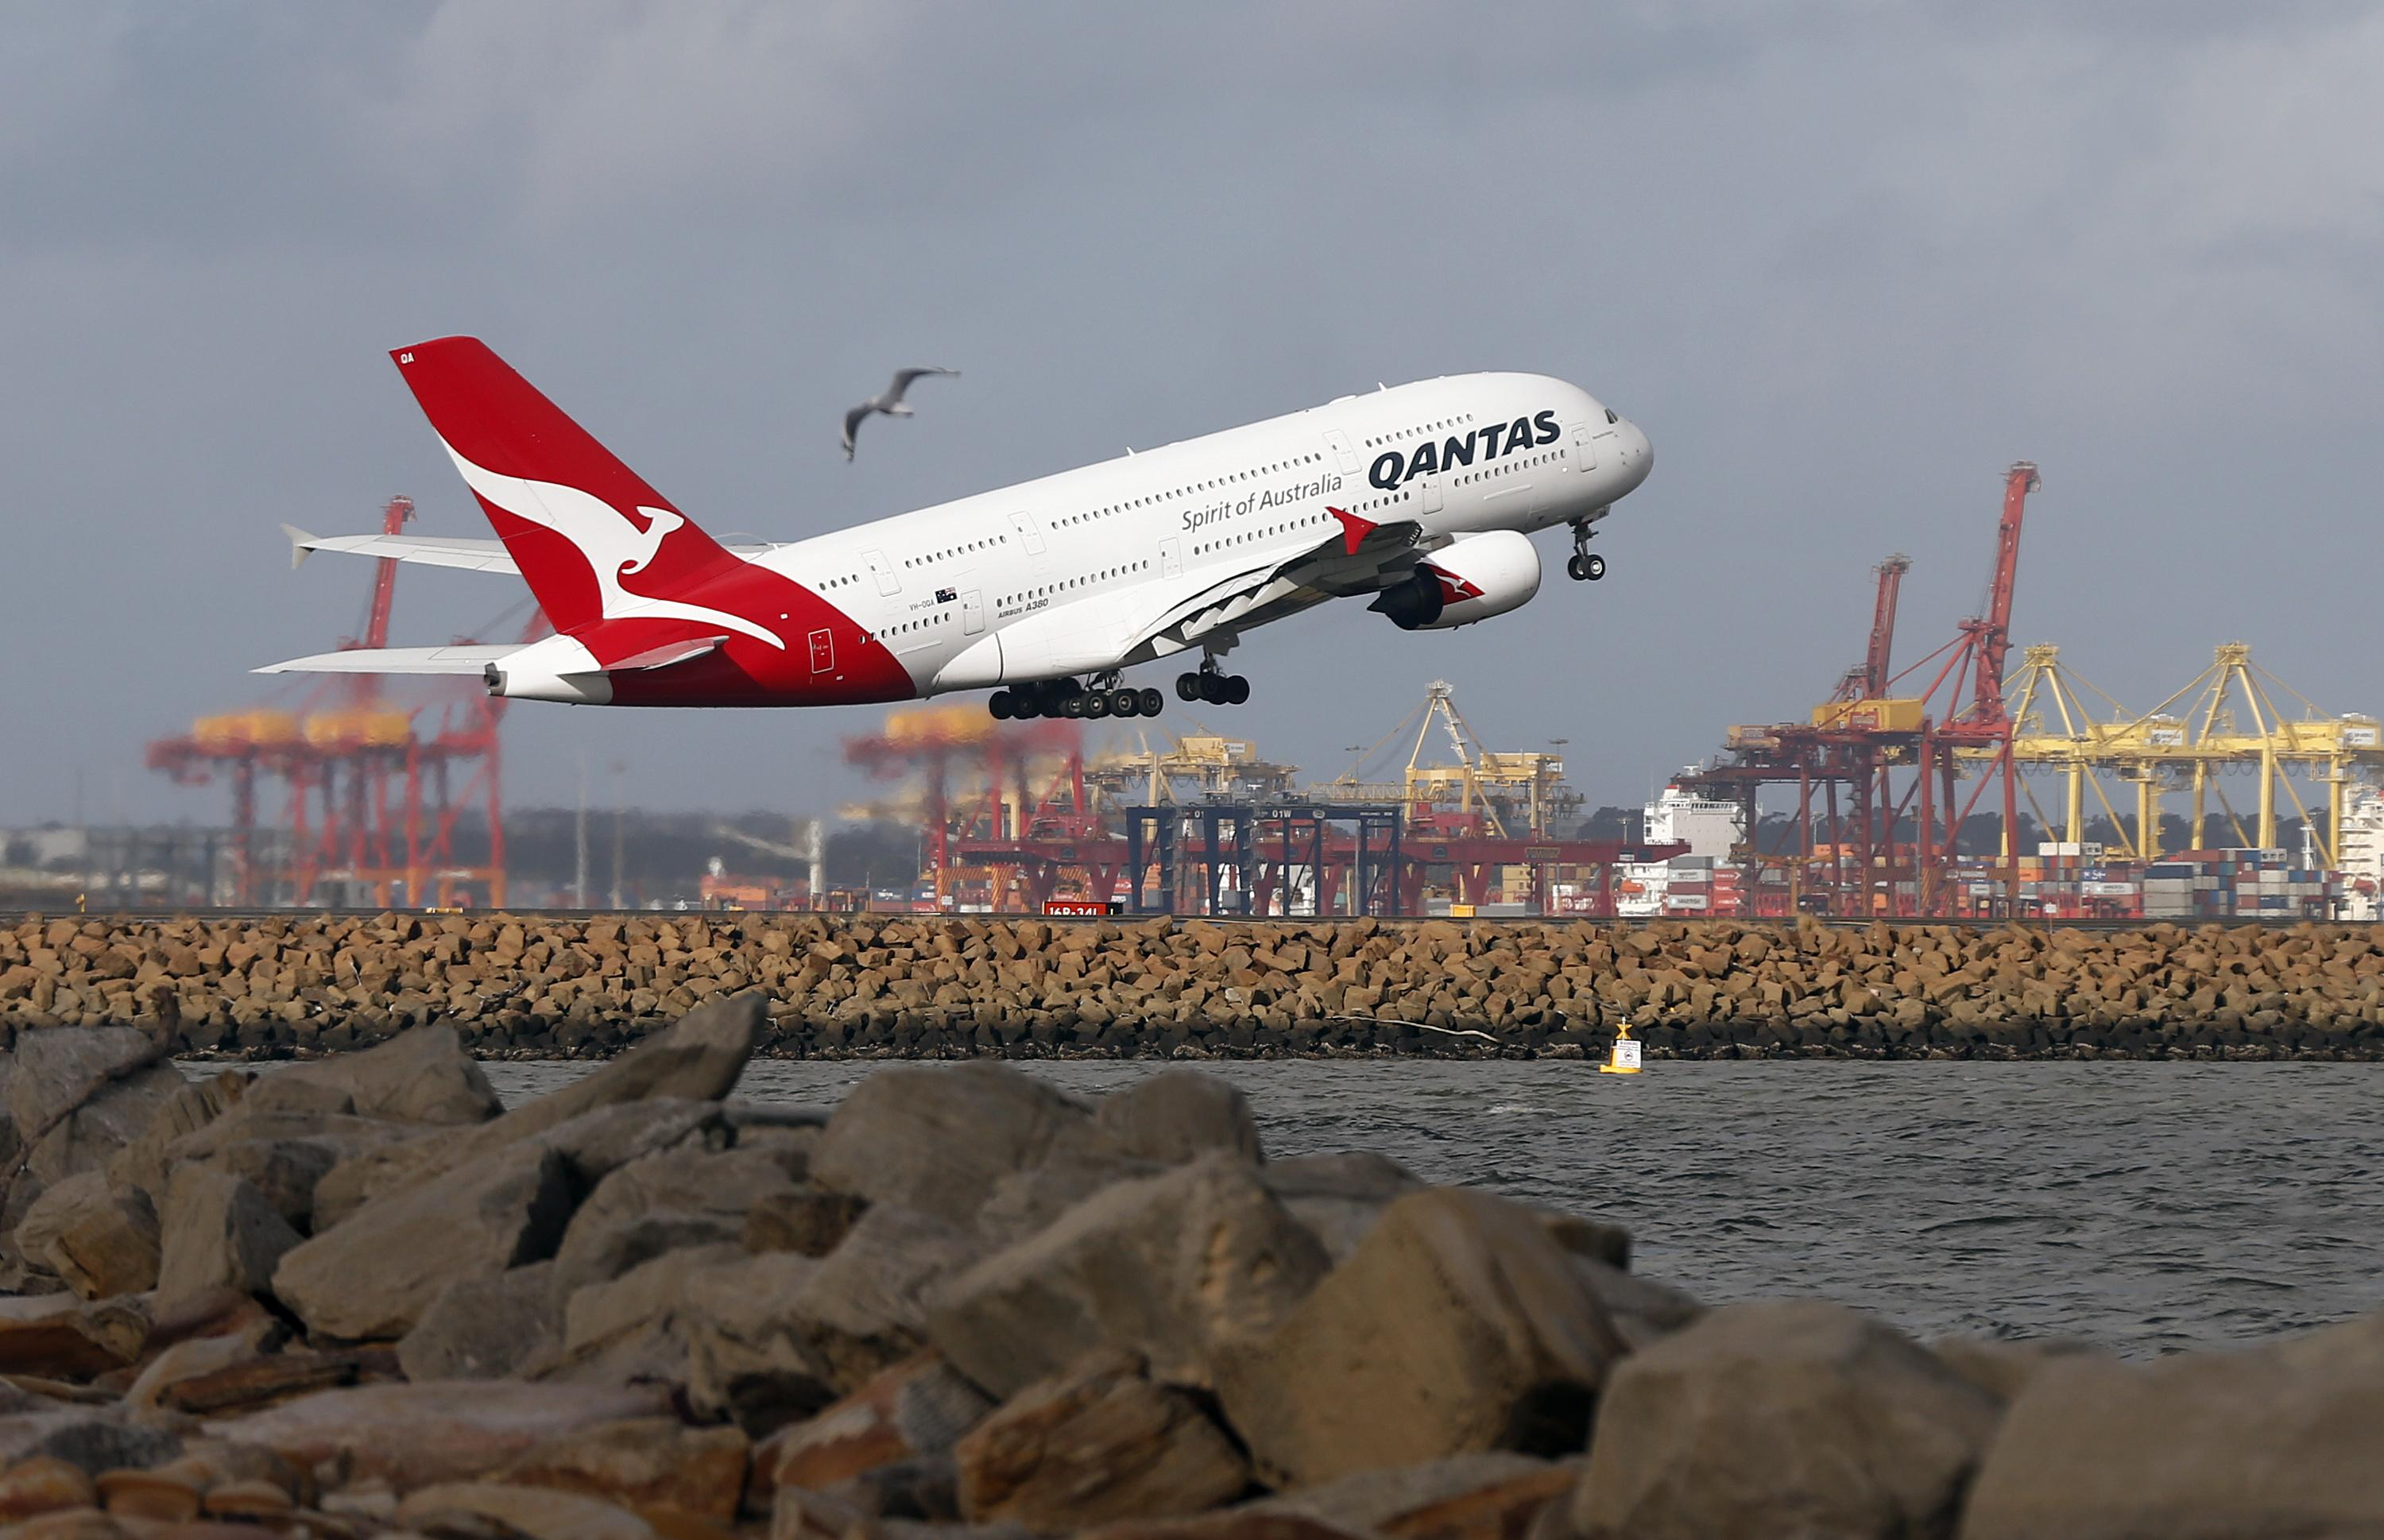 Qantas cancels order for 8 Airbus A380s amid doubts on jet's